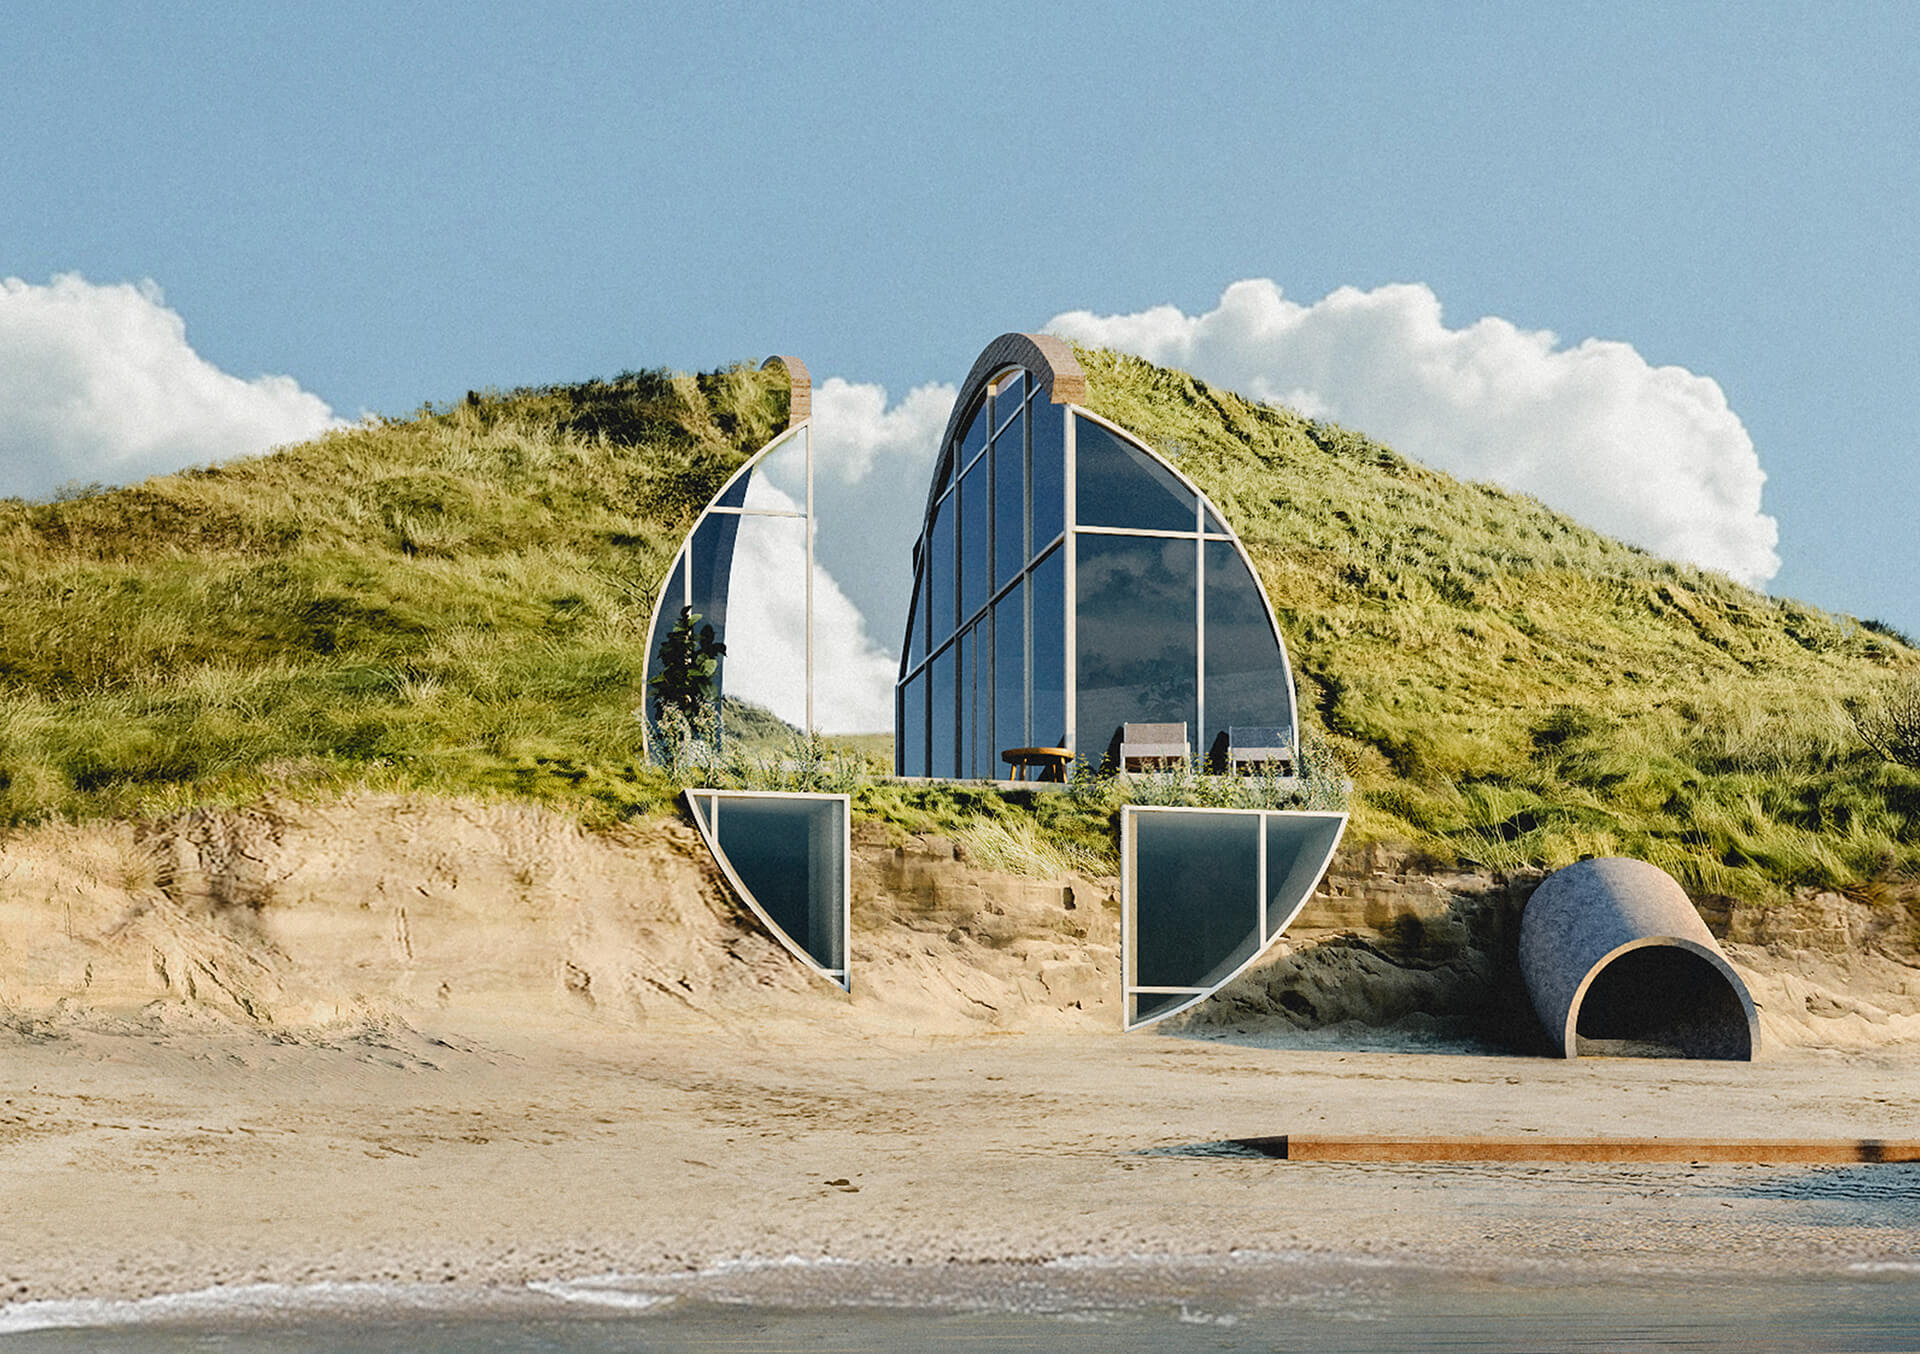 The conceptualised 'off-the-grid' Dune House will be covered in landscaped blanket | Dune House by Studio Vural | STIRworld